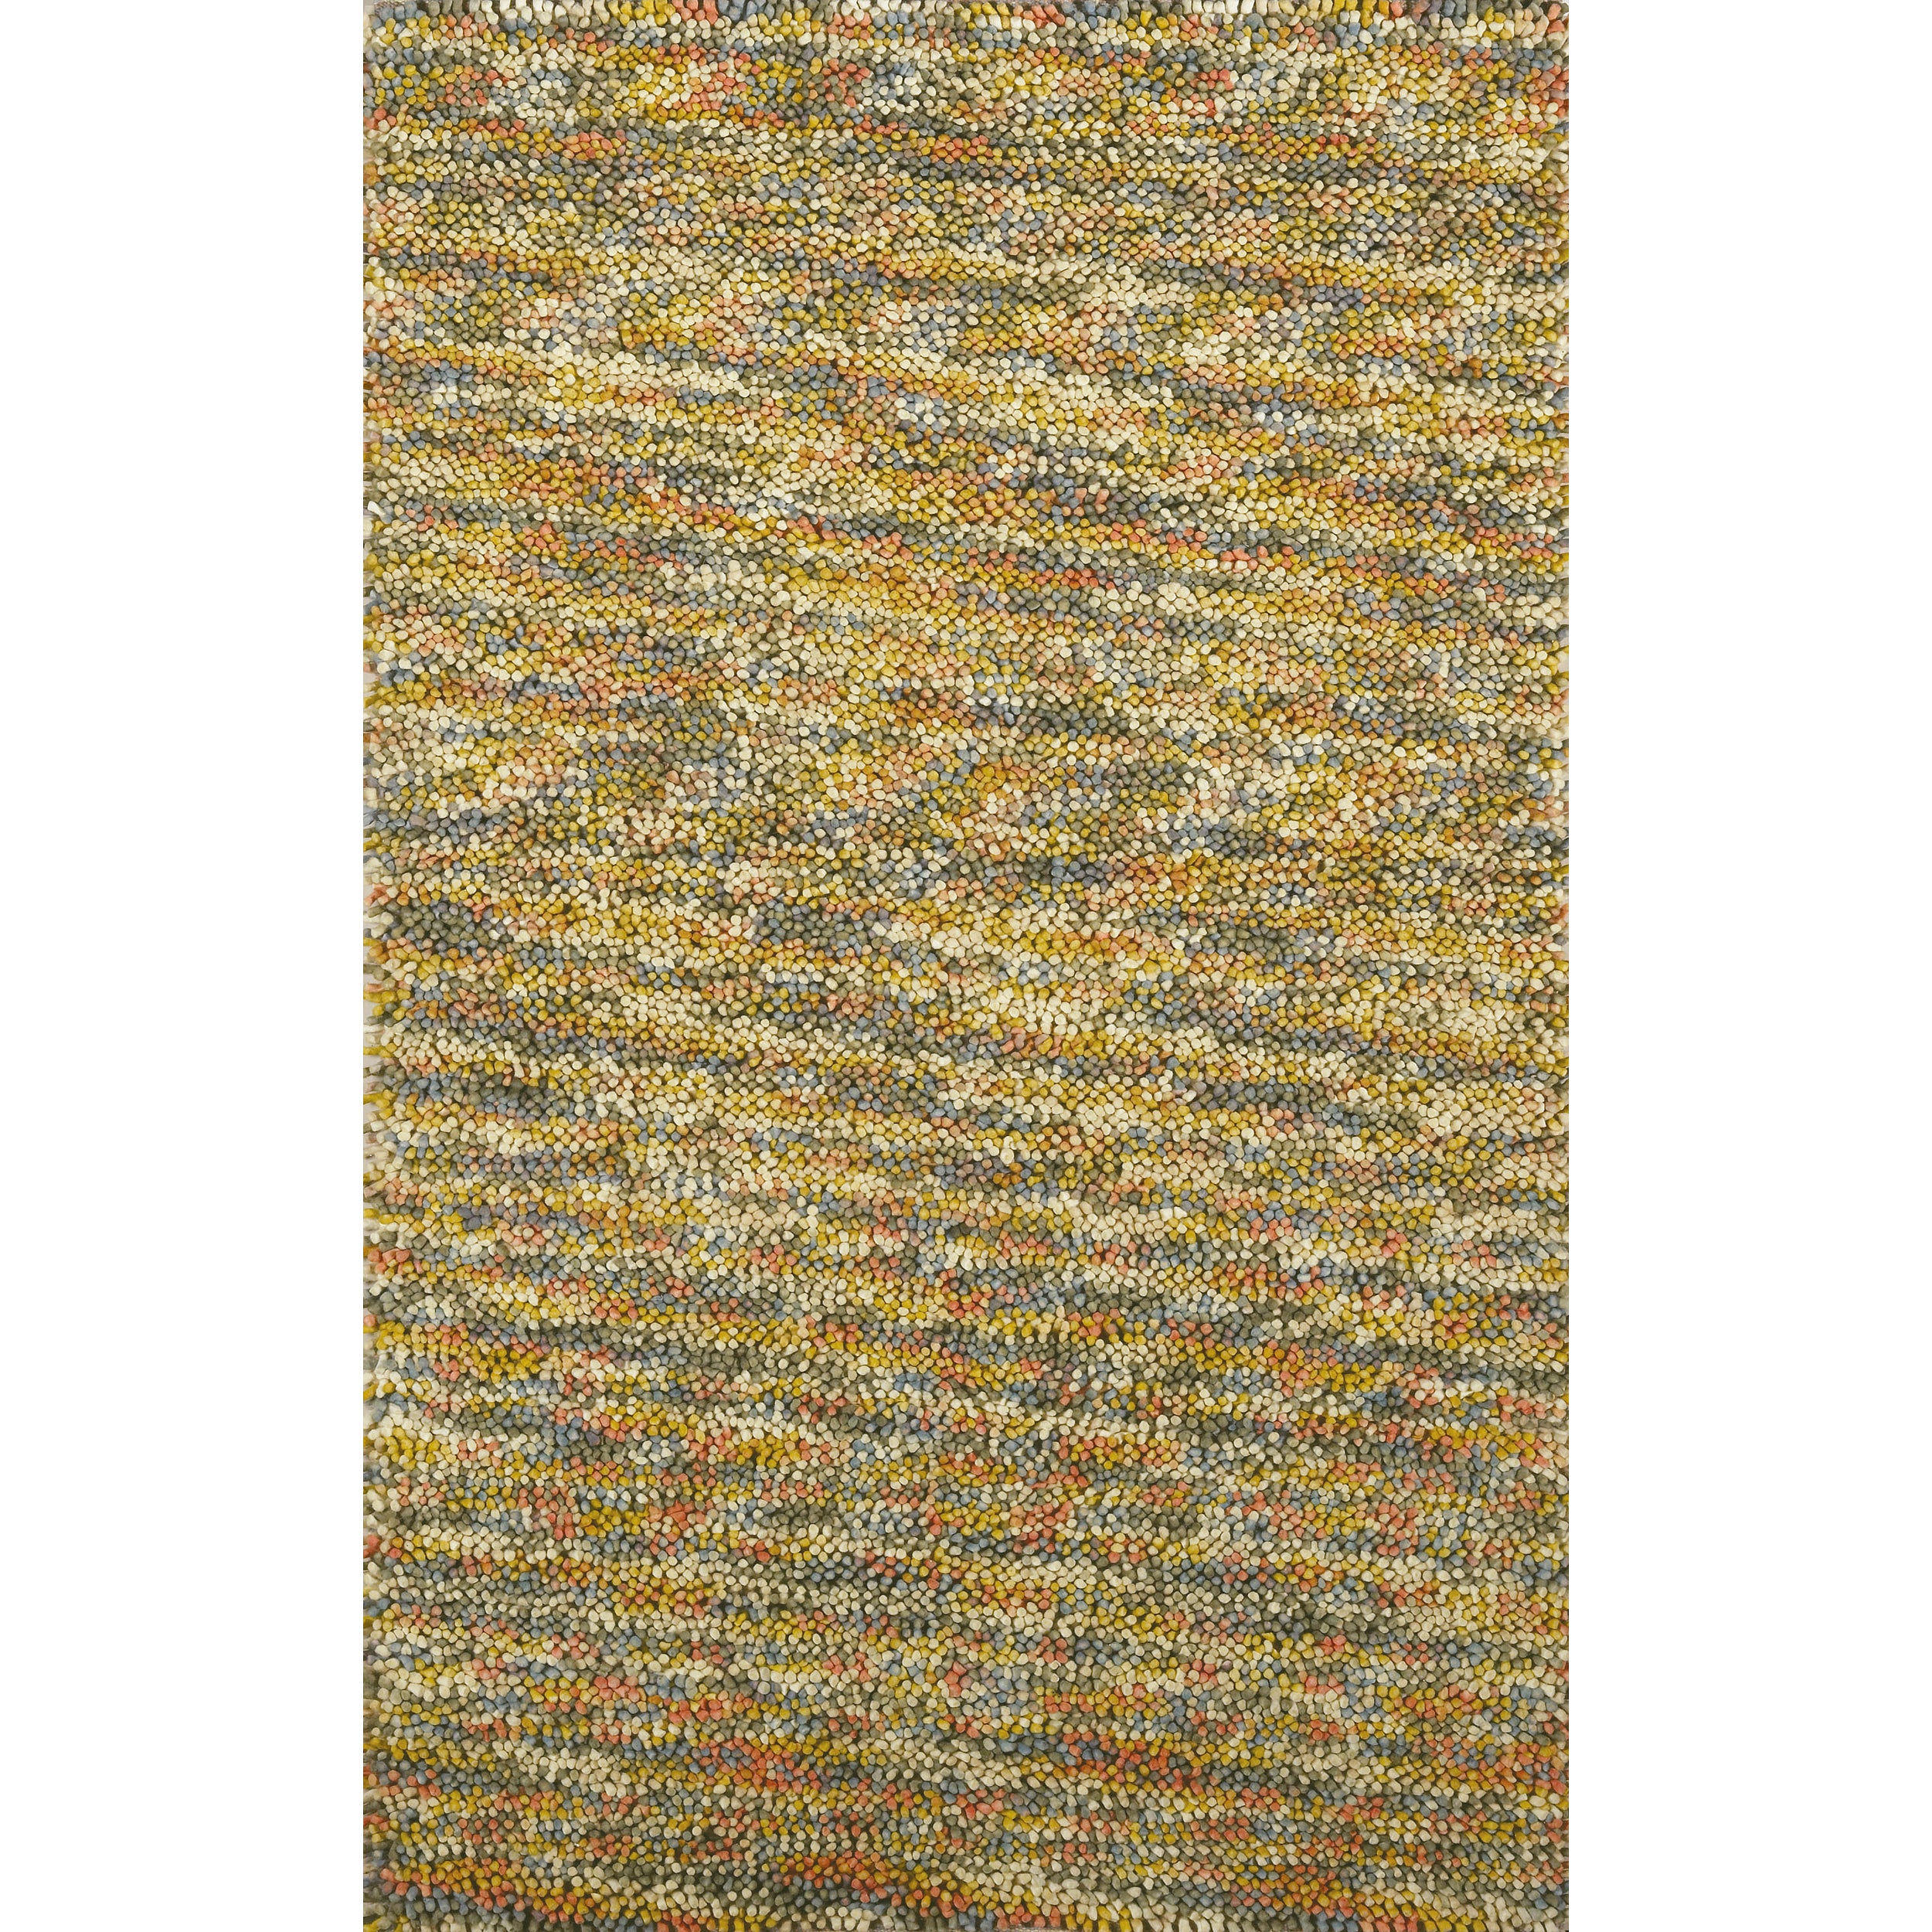 Hand-woven Multicolored Kofun Wool Rug (2' x 3')